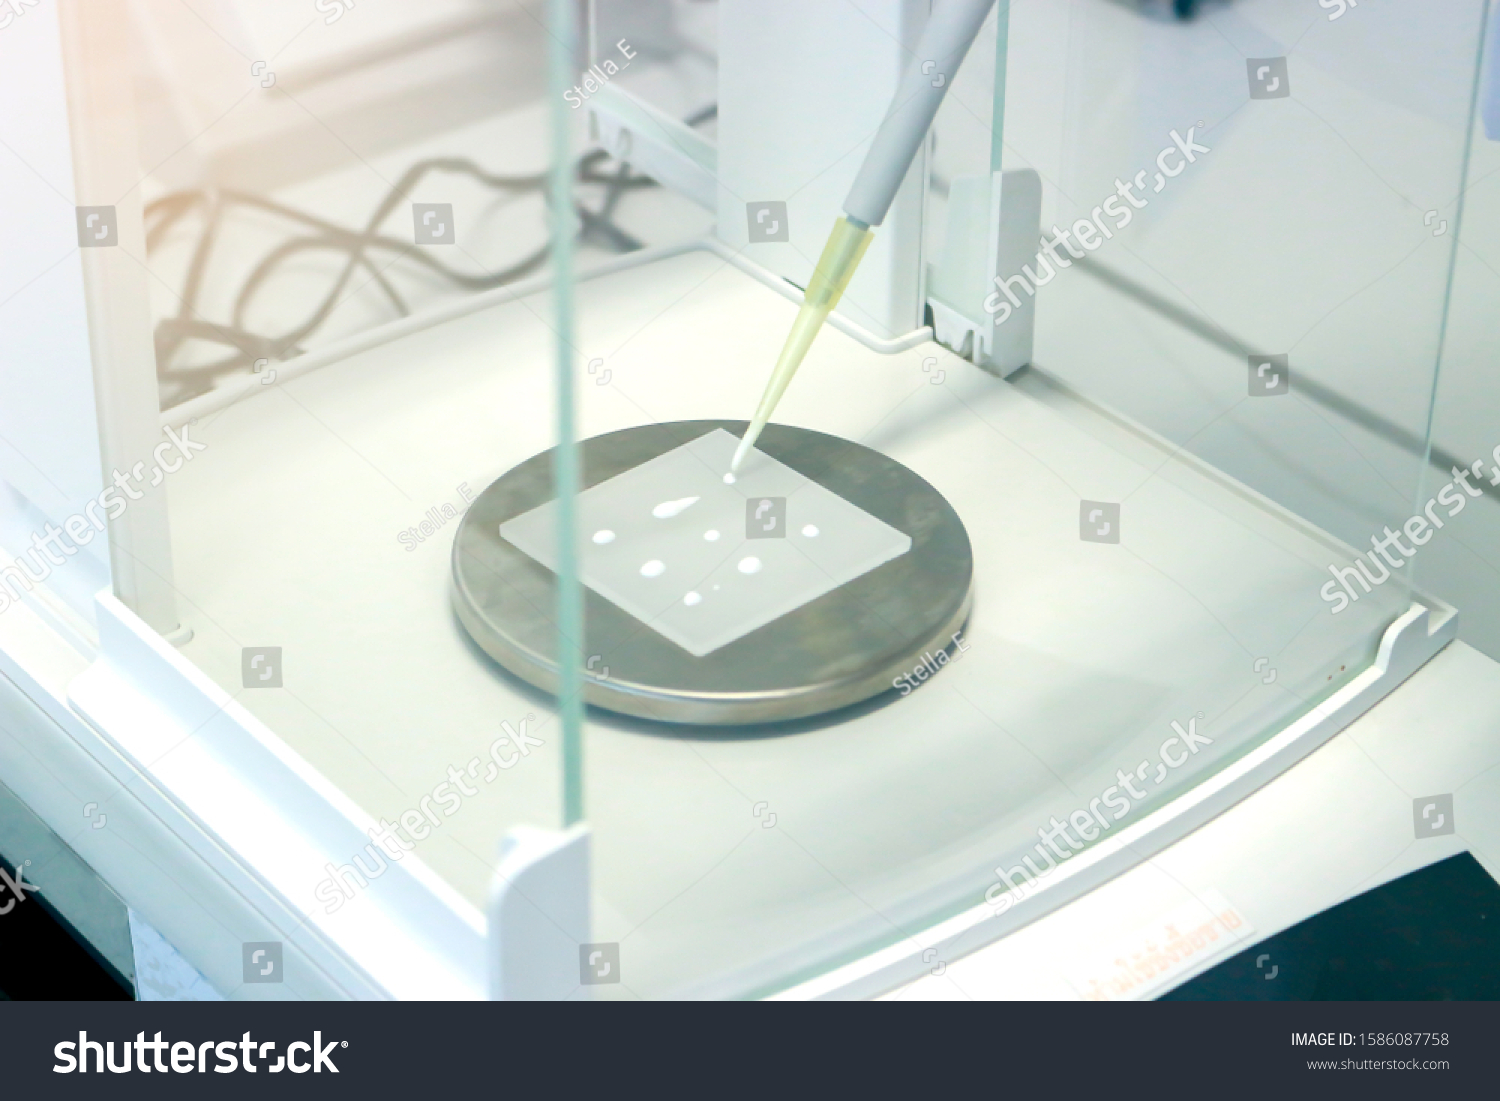 Scientist pipette a sample to sheet PMMA acrylic plate on analytical balance to know the exact weight before measuring the radiation protection of UV sunscreen cosmetic by using ultraviolet meter #1586087758